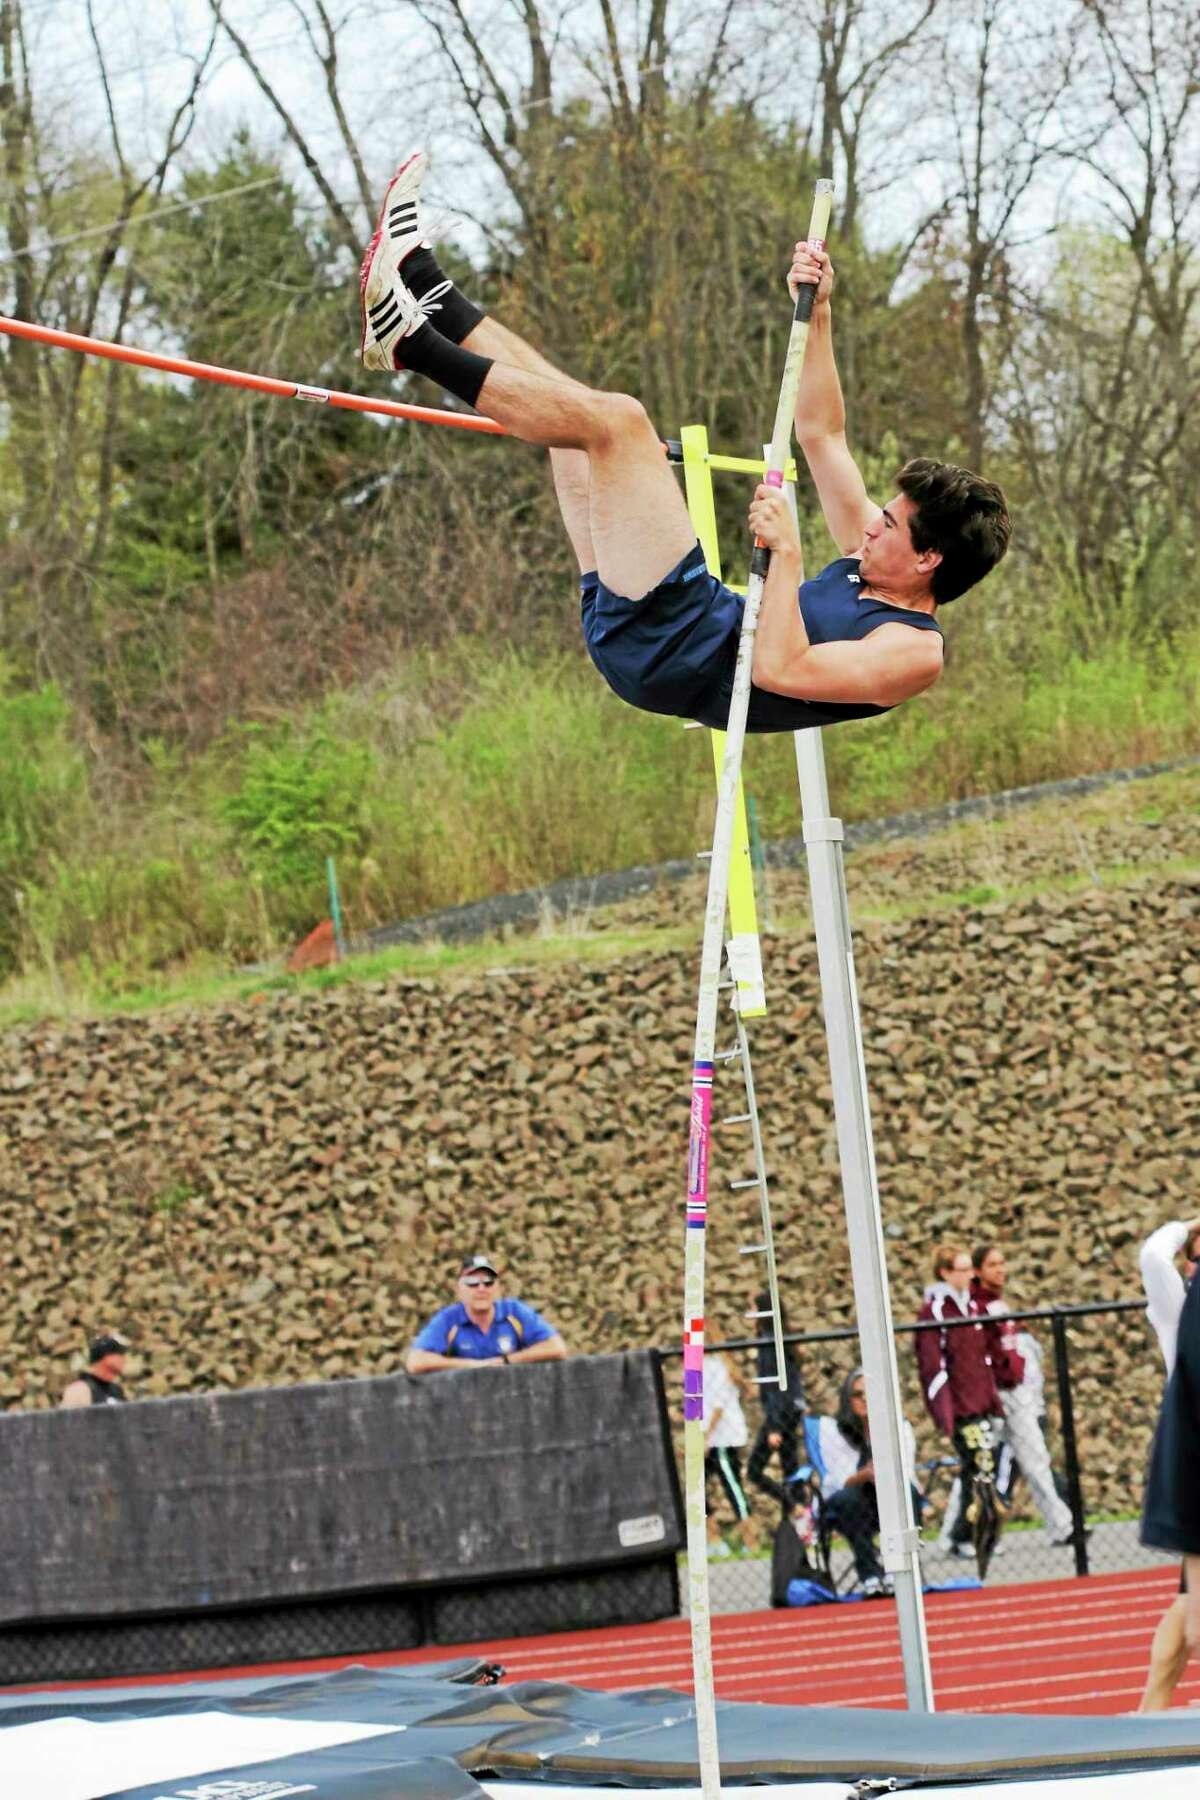 Middletown senior Jack Flynn qualifies for states in the pole vault event at Saturday's Middletown Invitational.